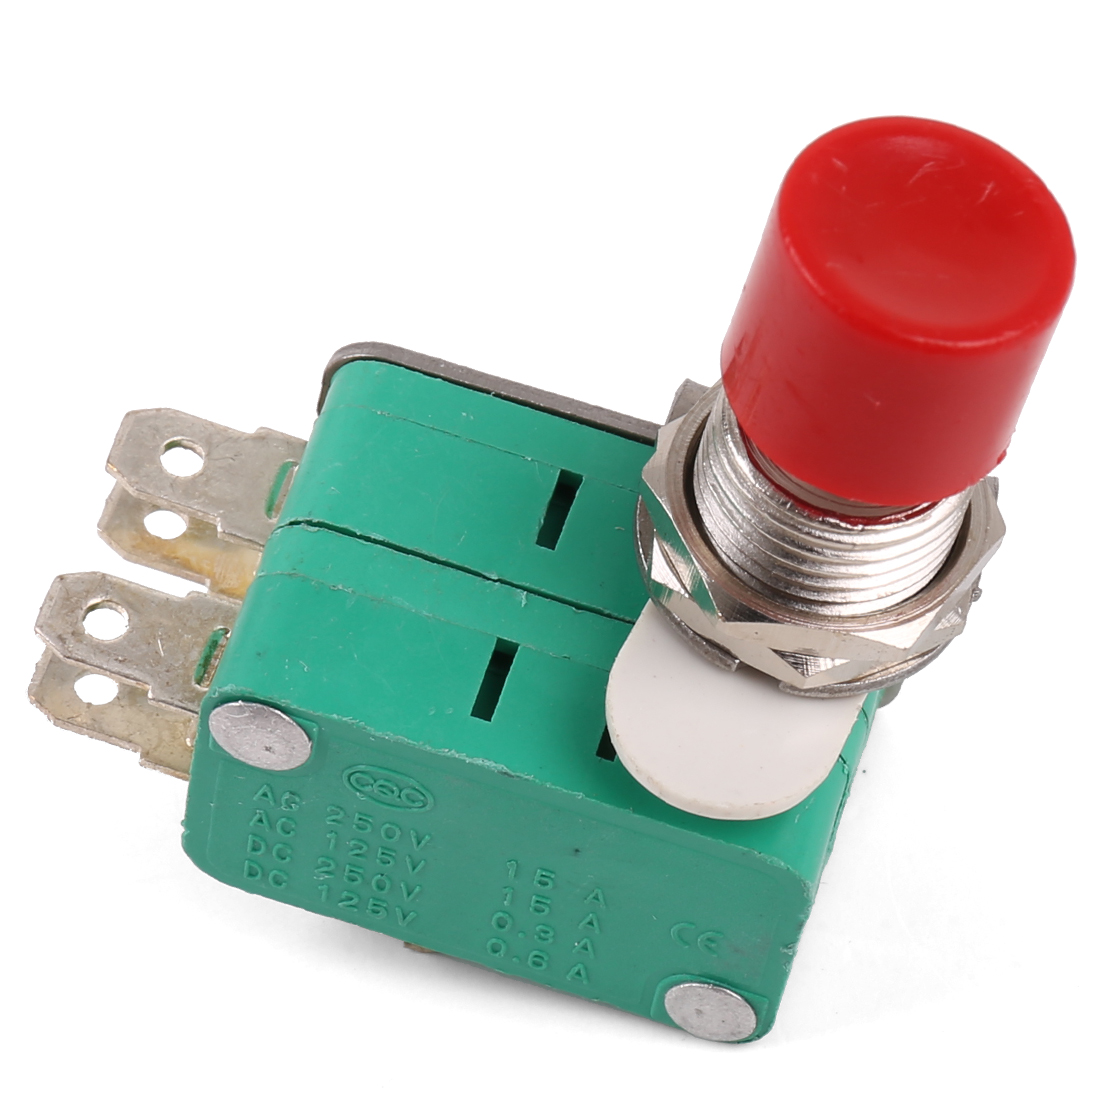 AC 250V 10A Momentary Emergency Stop Push Button Switch